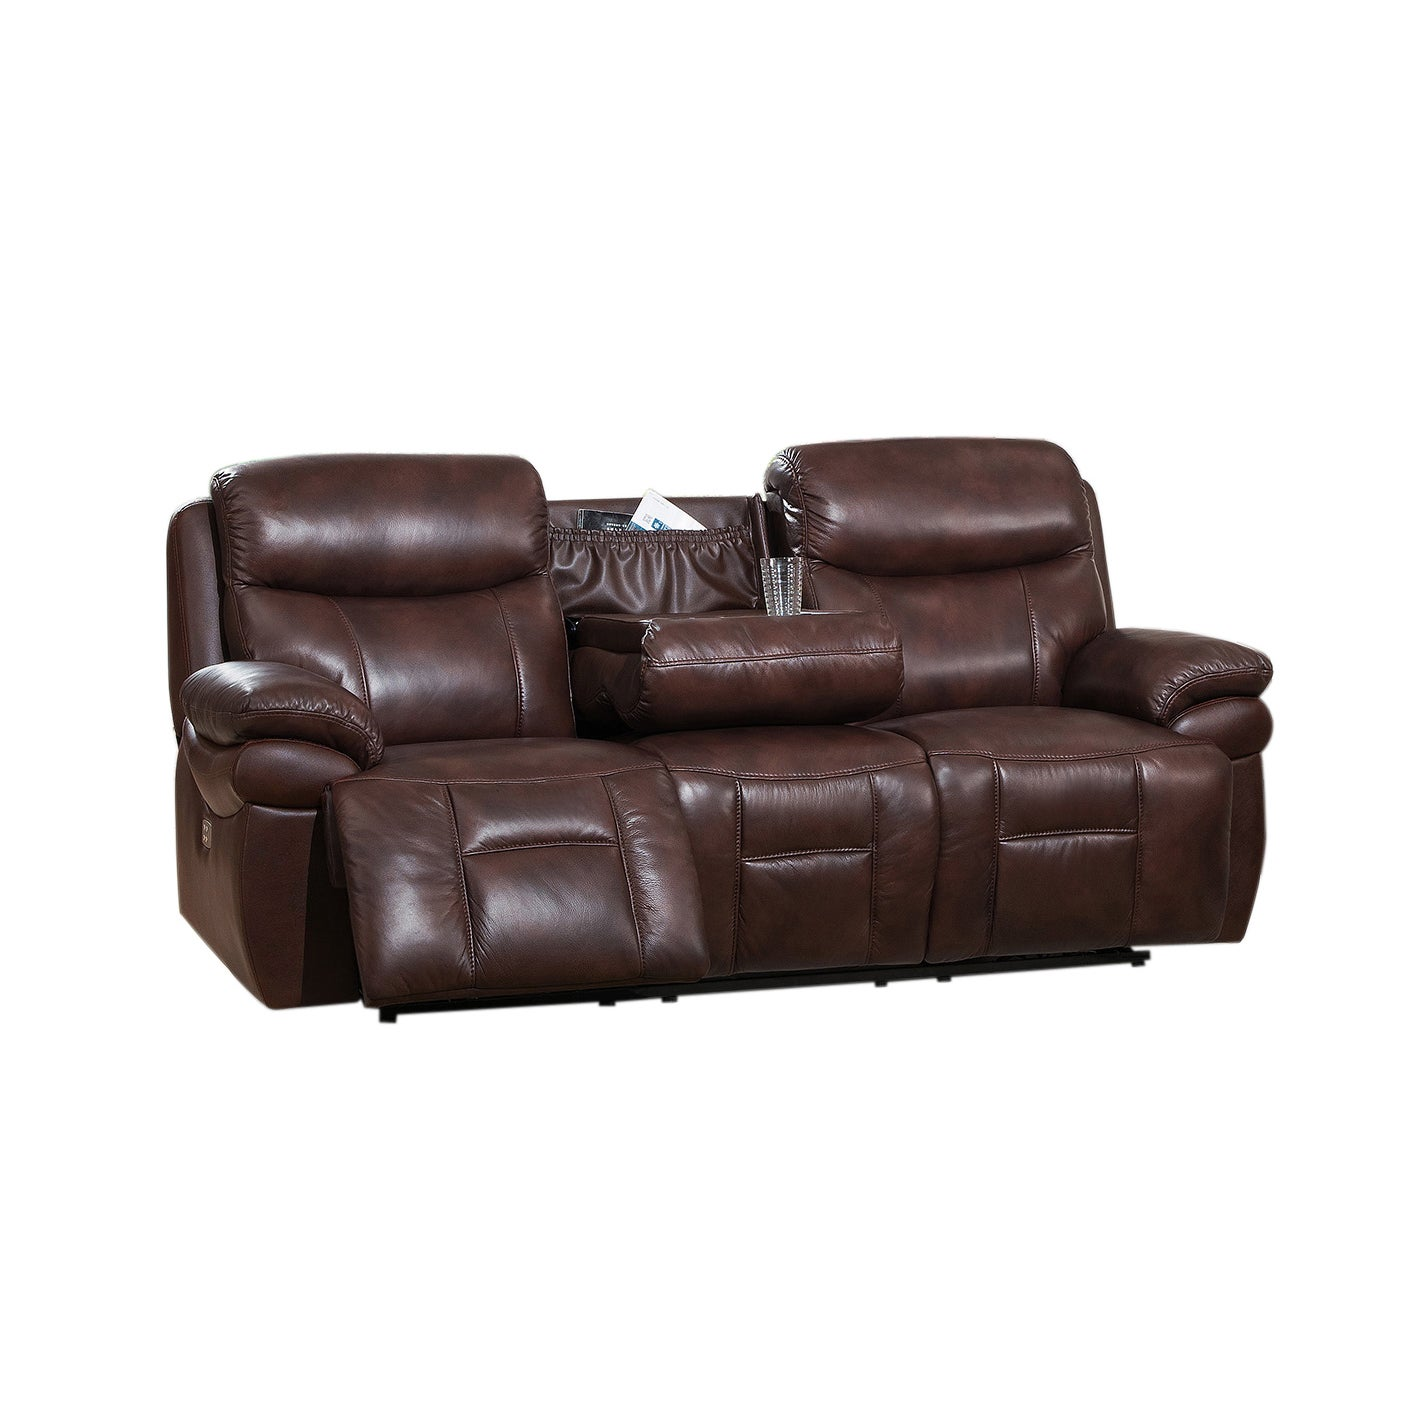 Sanford Leather Power Reclining Sofa Loveseat and Chair Set with